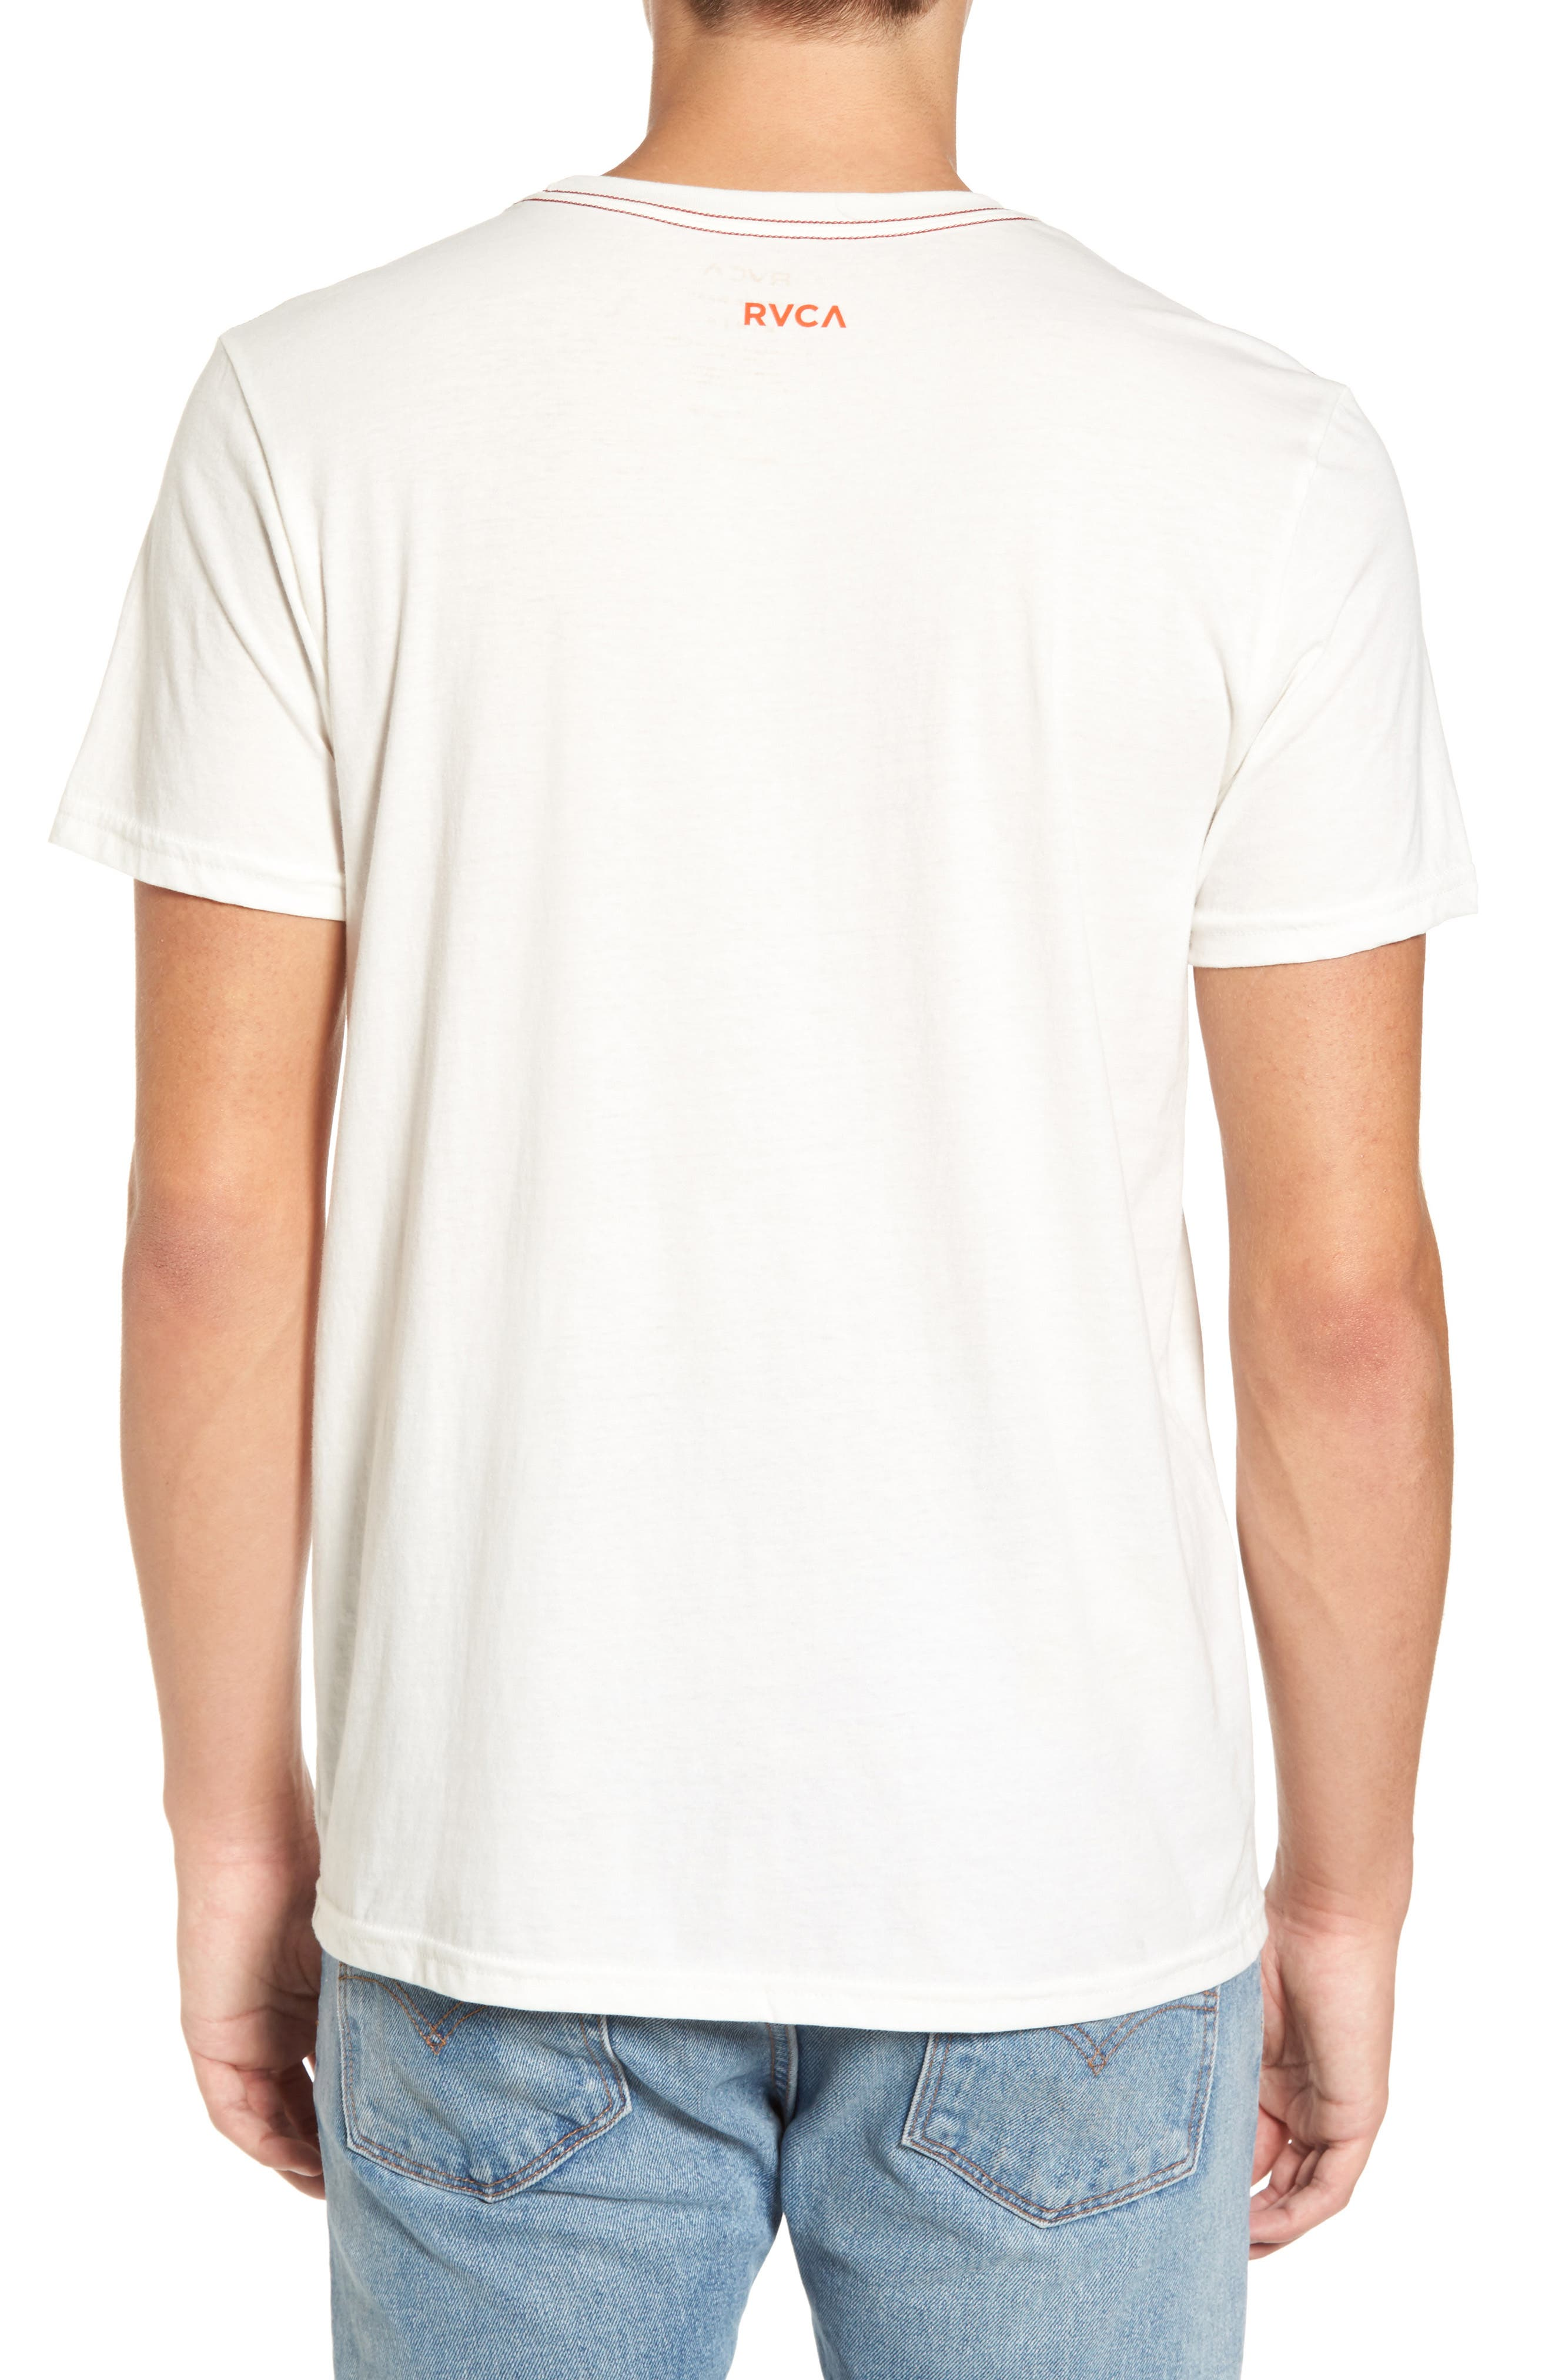 In My Own World Graphic T-Shirt,                             Alternate thumbnail 2, color,                             111